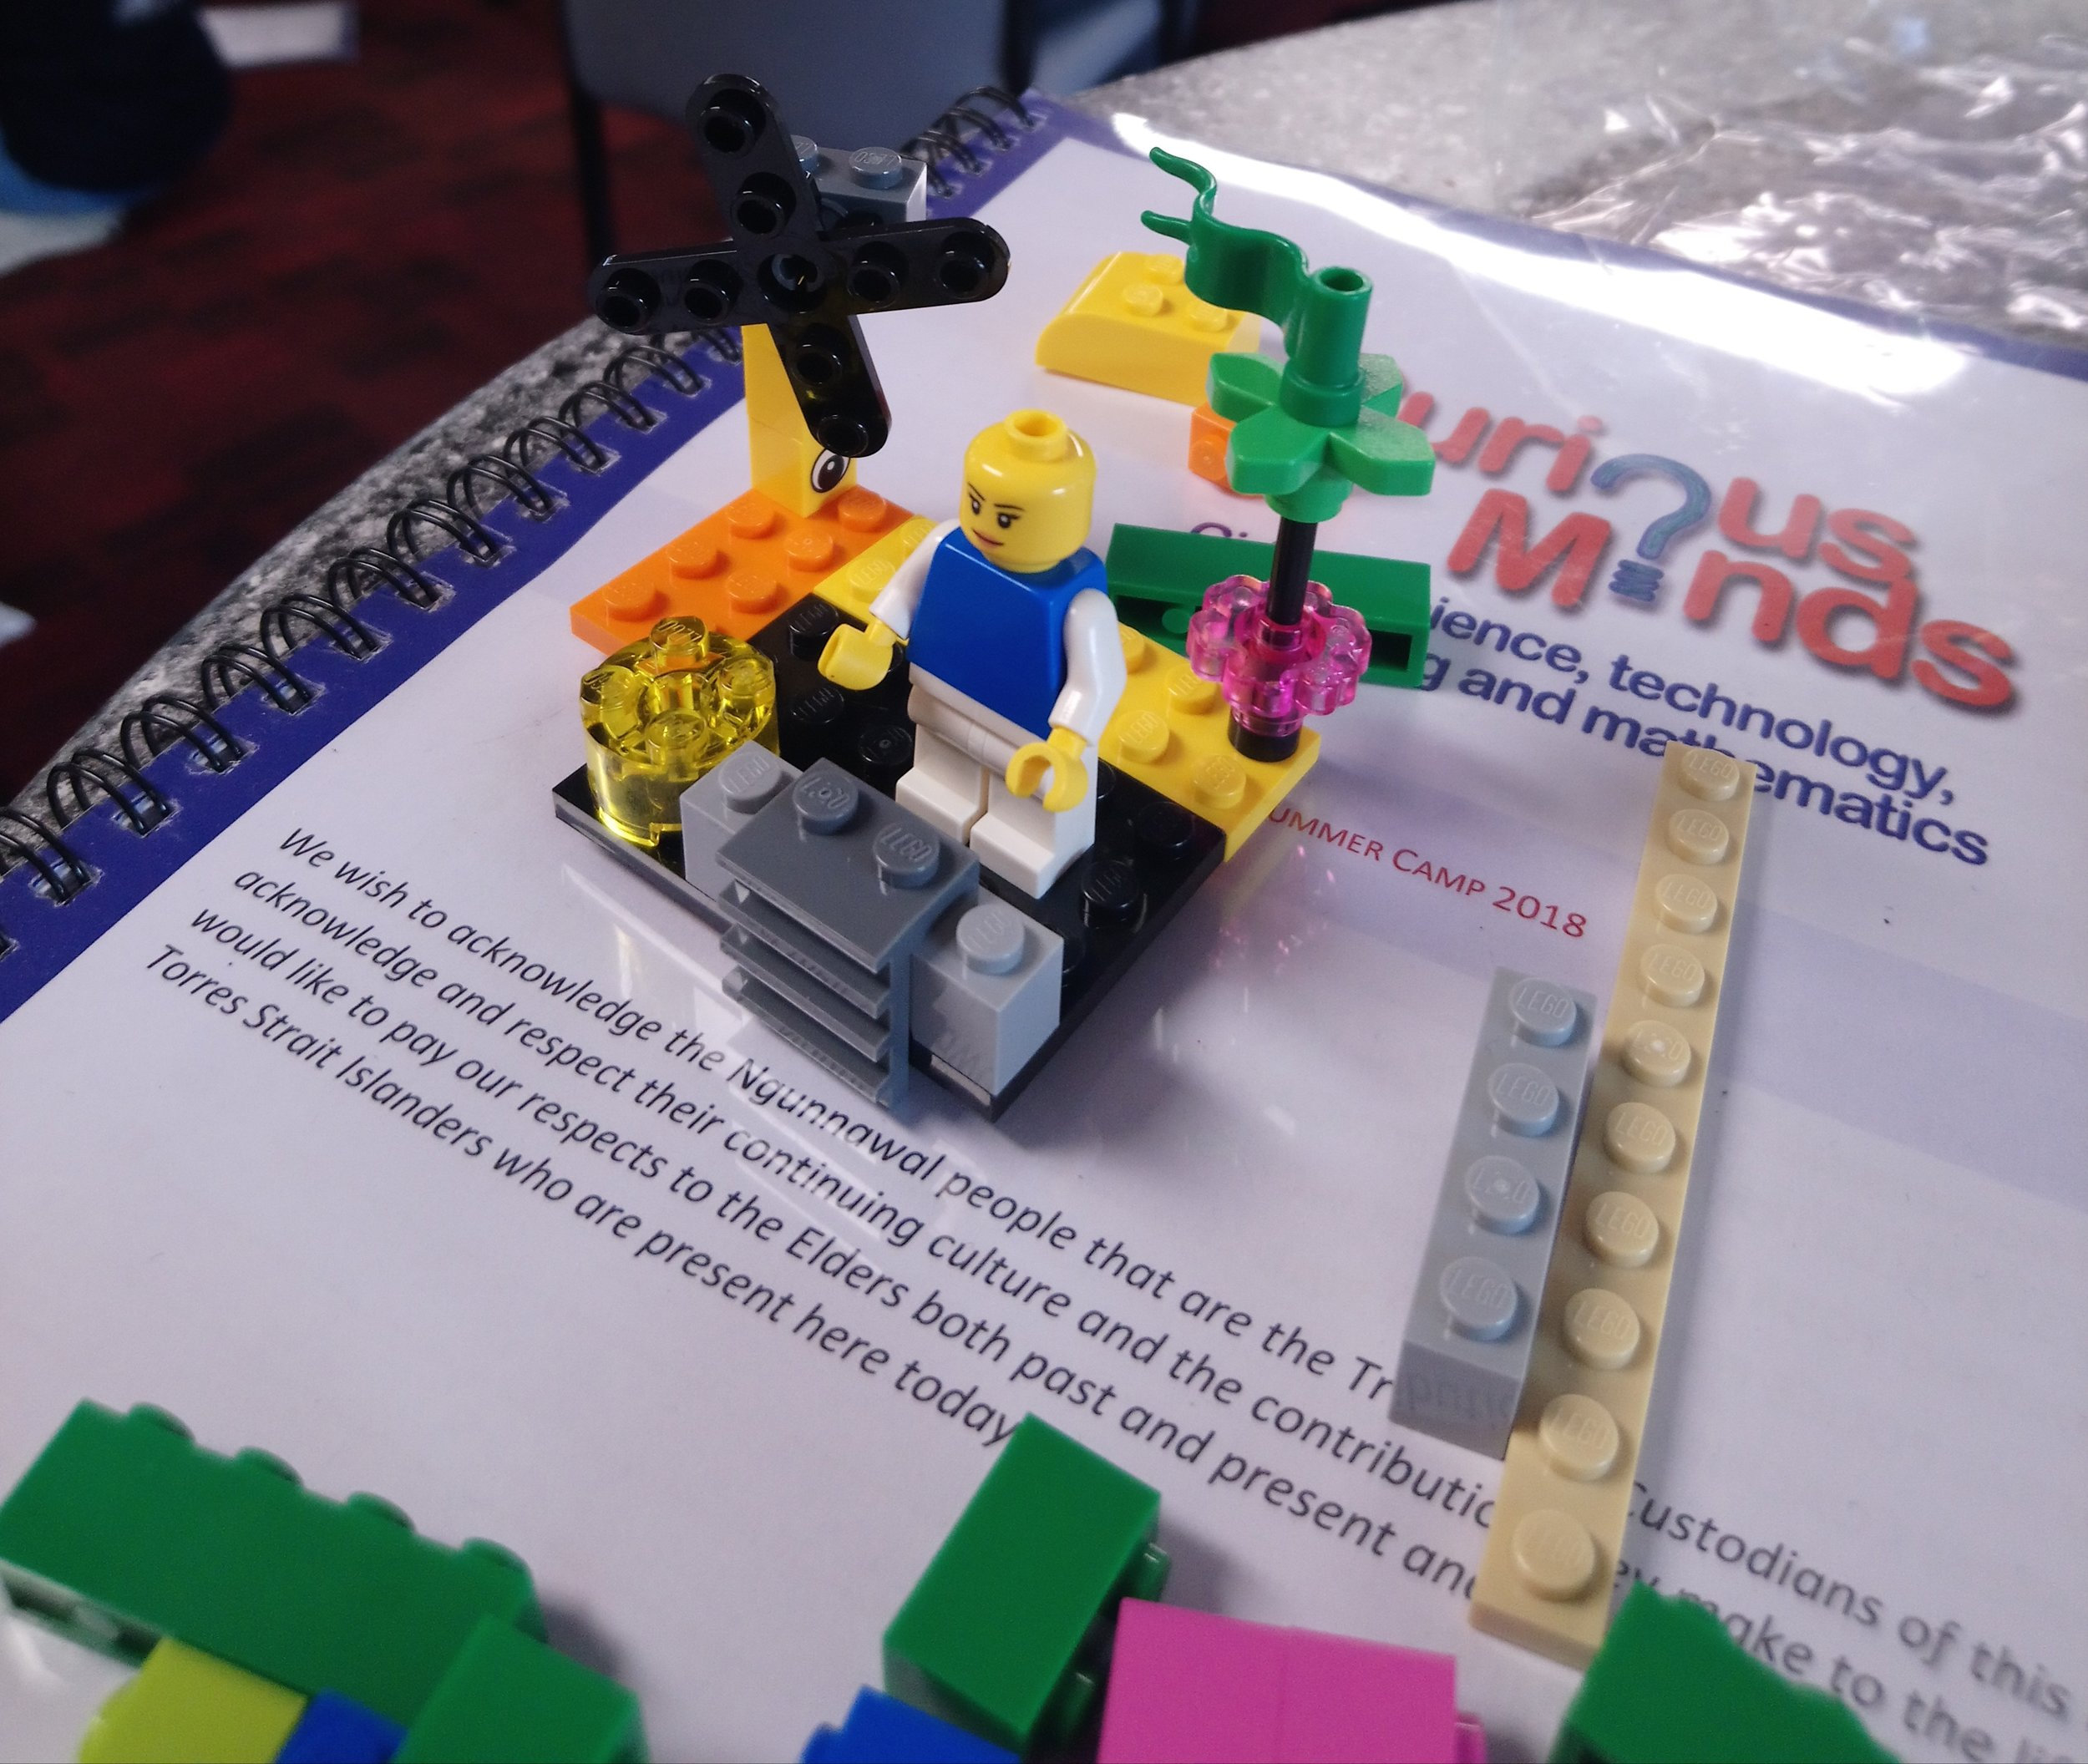 Curious Minds 2019: What mentoring looks like in lego! Emily and I build a small model of the mentoring relationship as we perceive it - think bridges being climbed, flags being raised, etc!